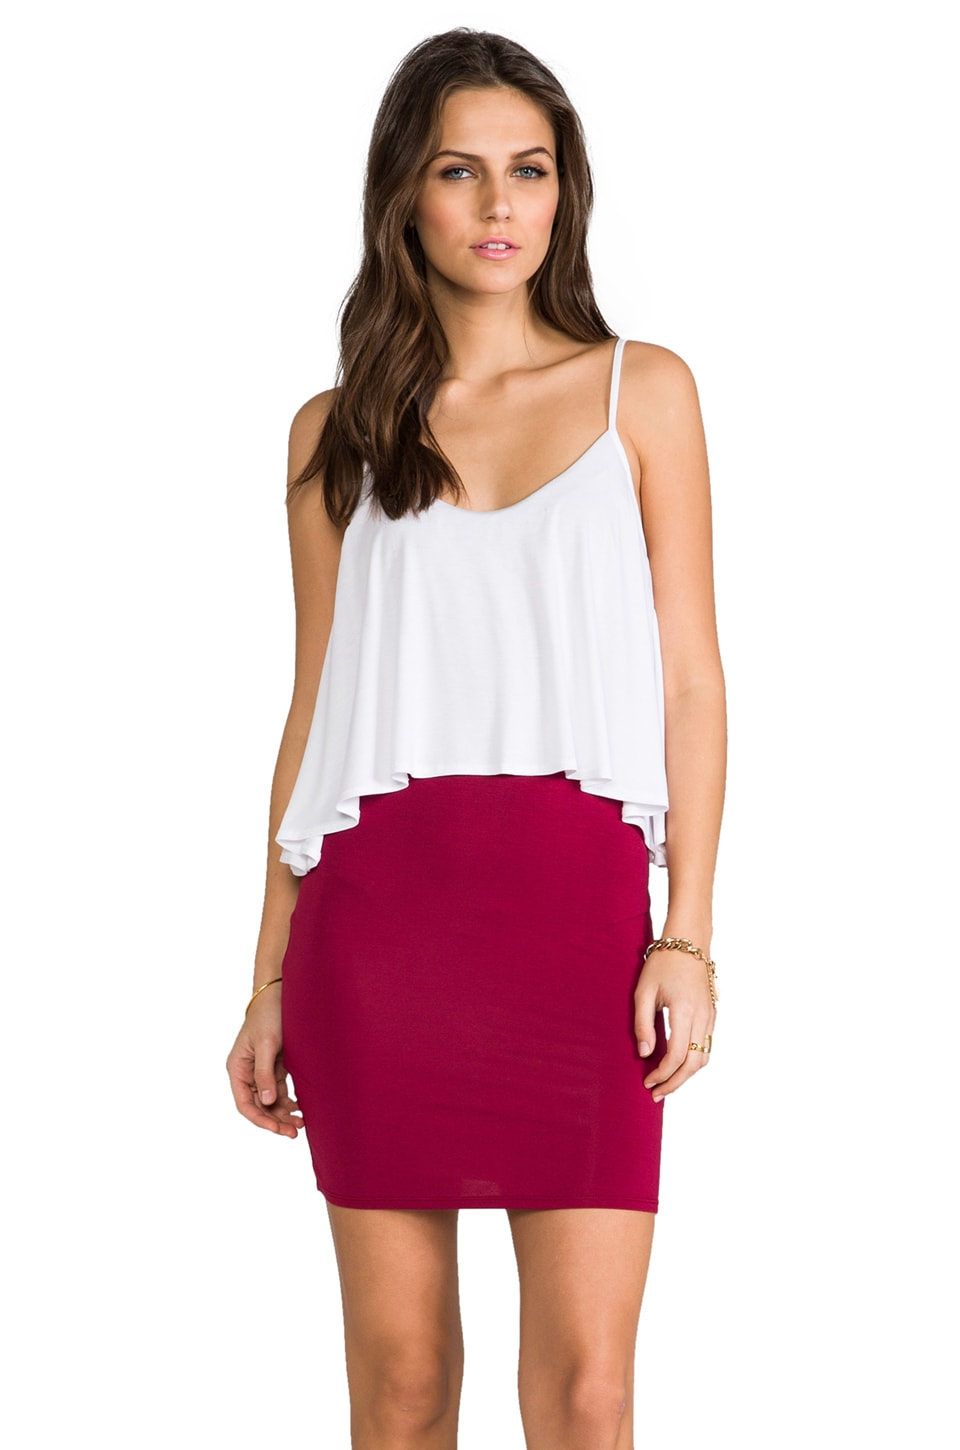 James & Joy Gameday II Cami Dress in White & Red